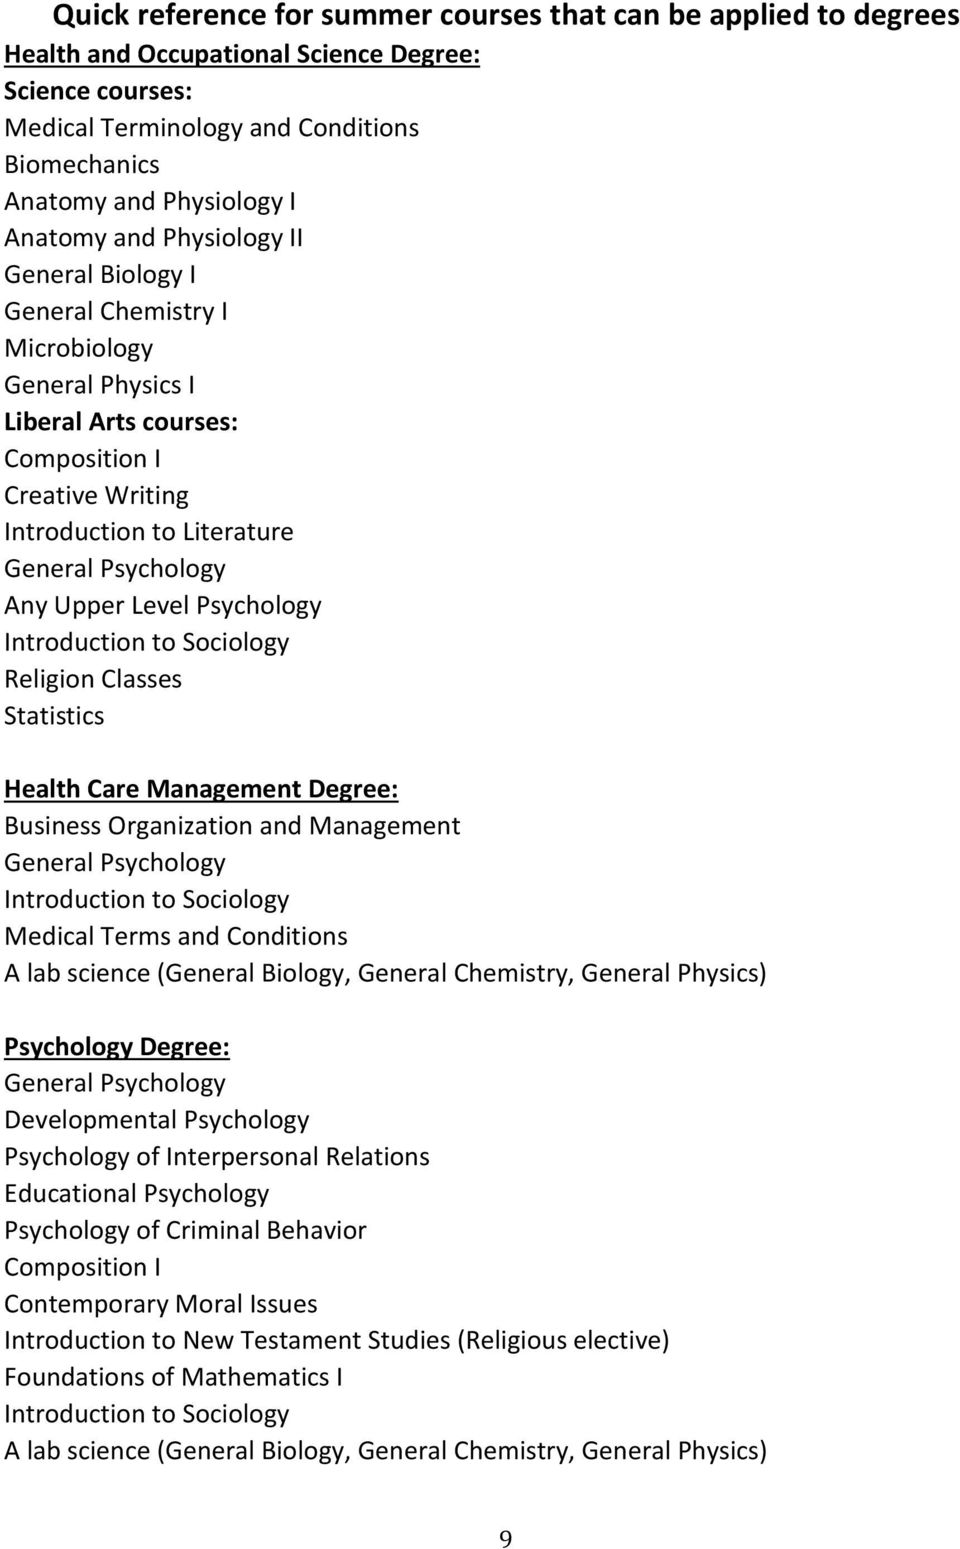 Upper Level Psychology Introduction to Sociology Religion Classes Statistics Health Care Management Degree: Business Organization and Management General Psychology Introduction to Sociology Medical